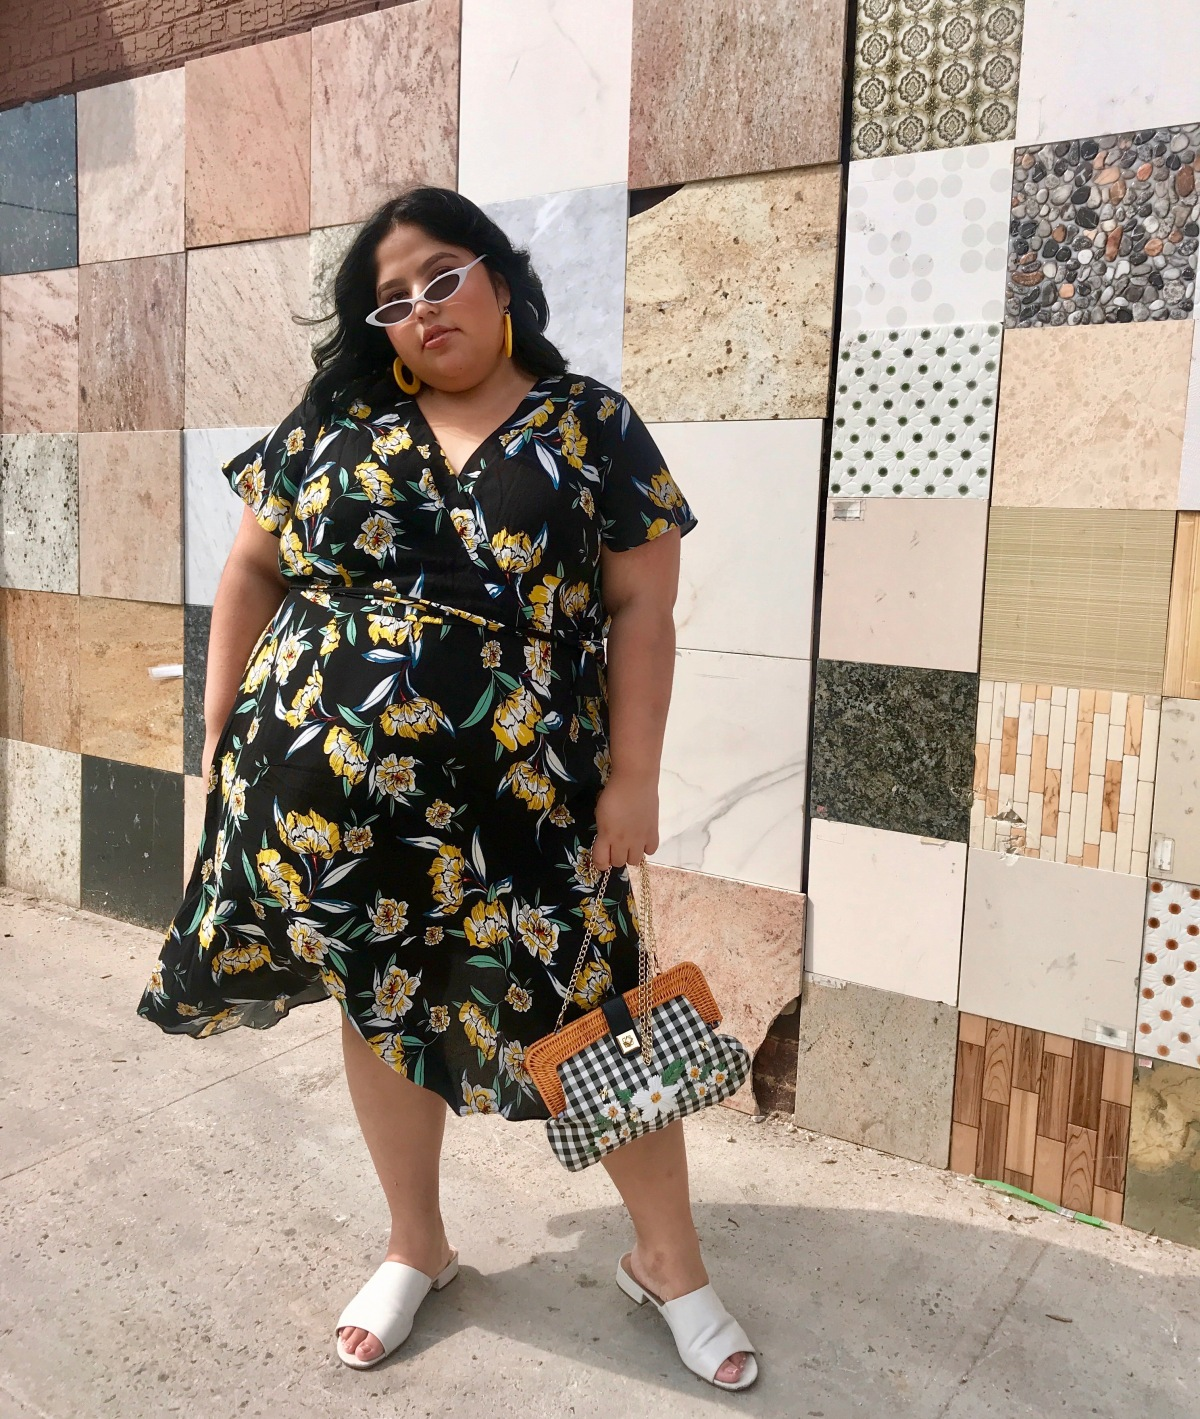 cecff8fc0f4 Forever 21 Plus Size Dresses Review - Gomes Weine AG